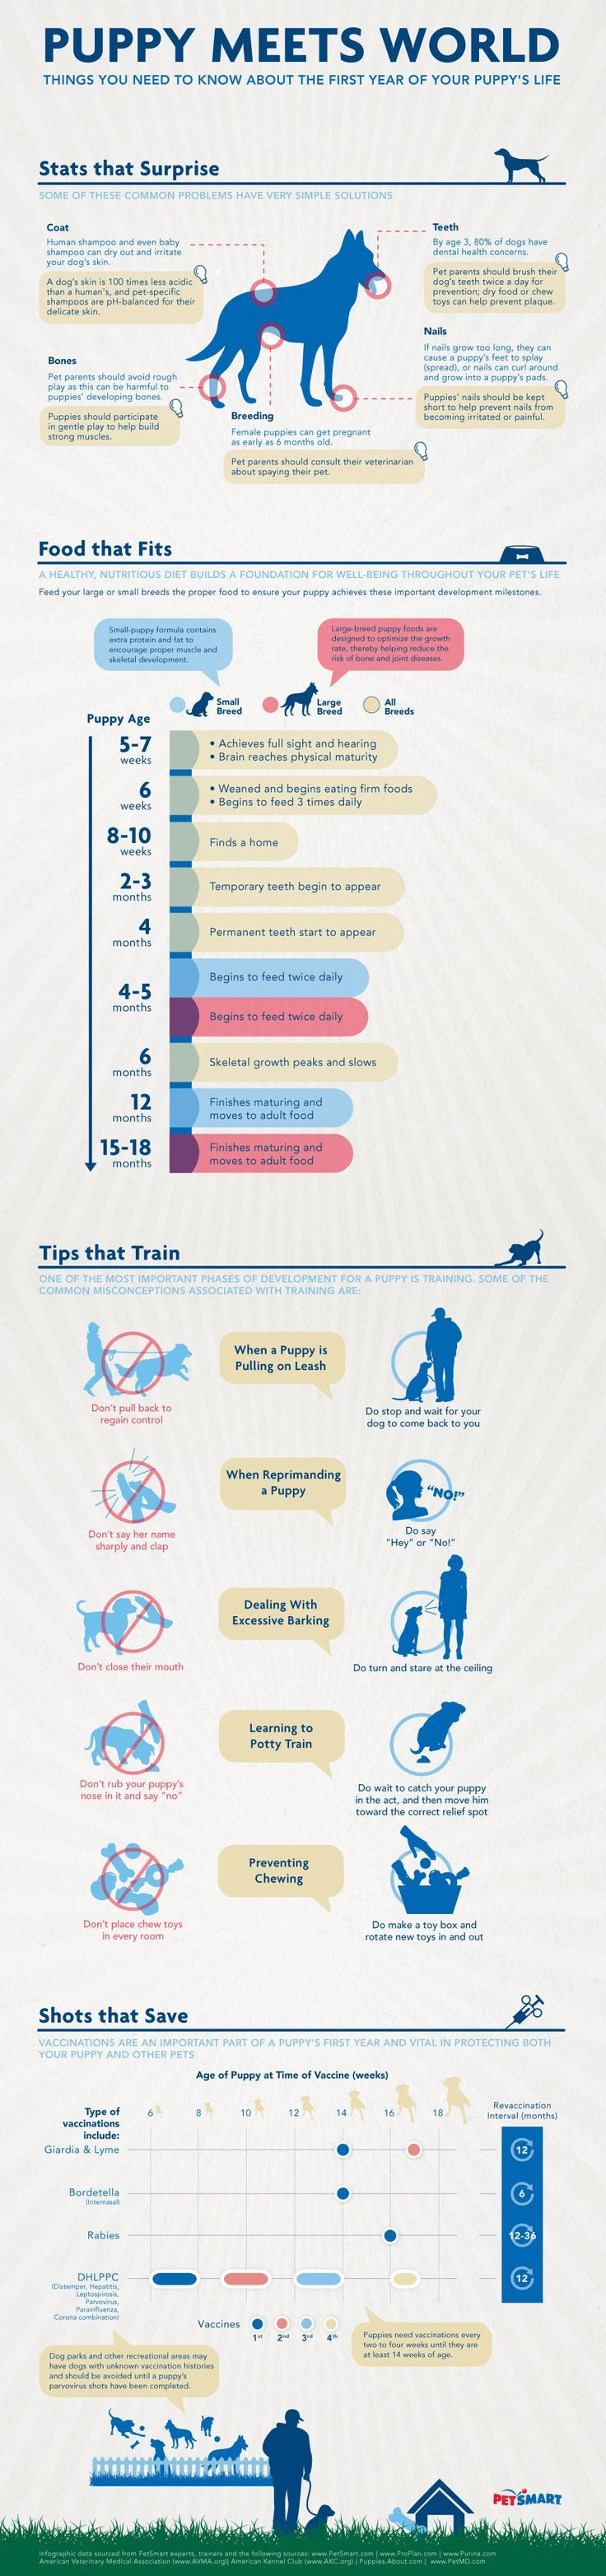 Understanding Your Puppy's Needs: Infographic - great puppy training tips! #puppytraining